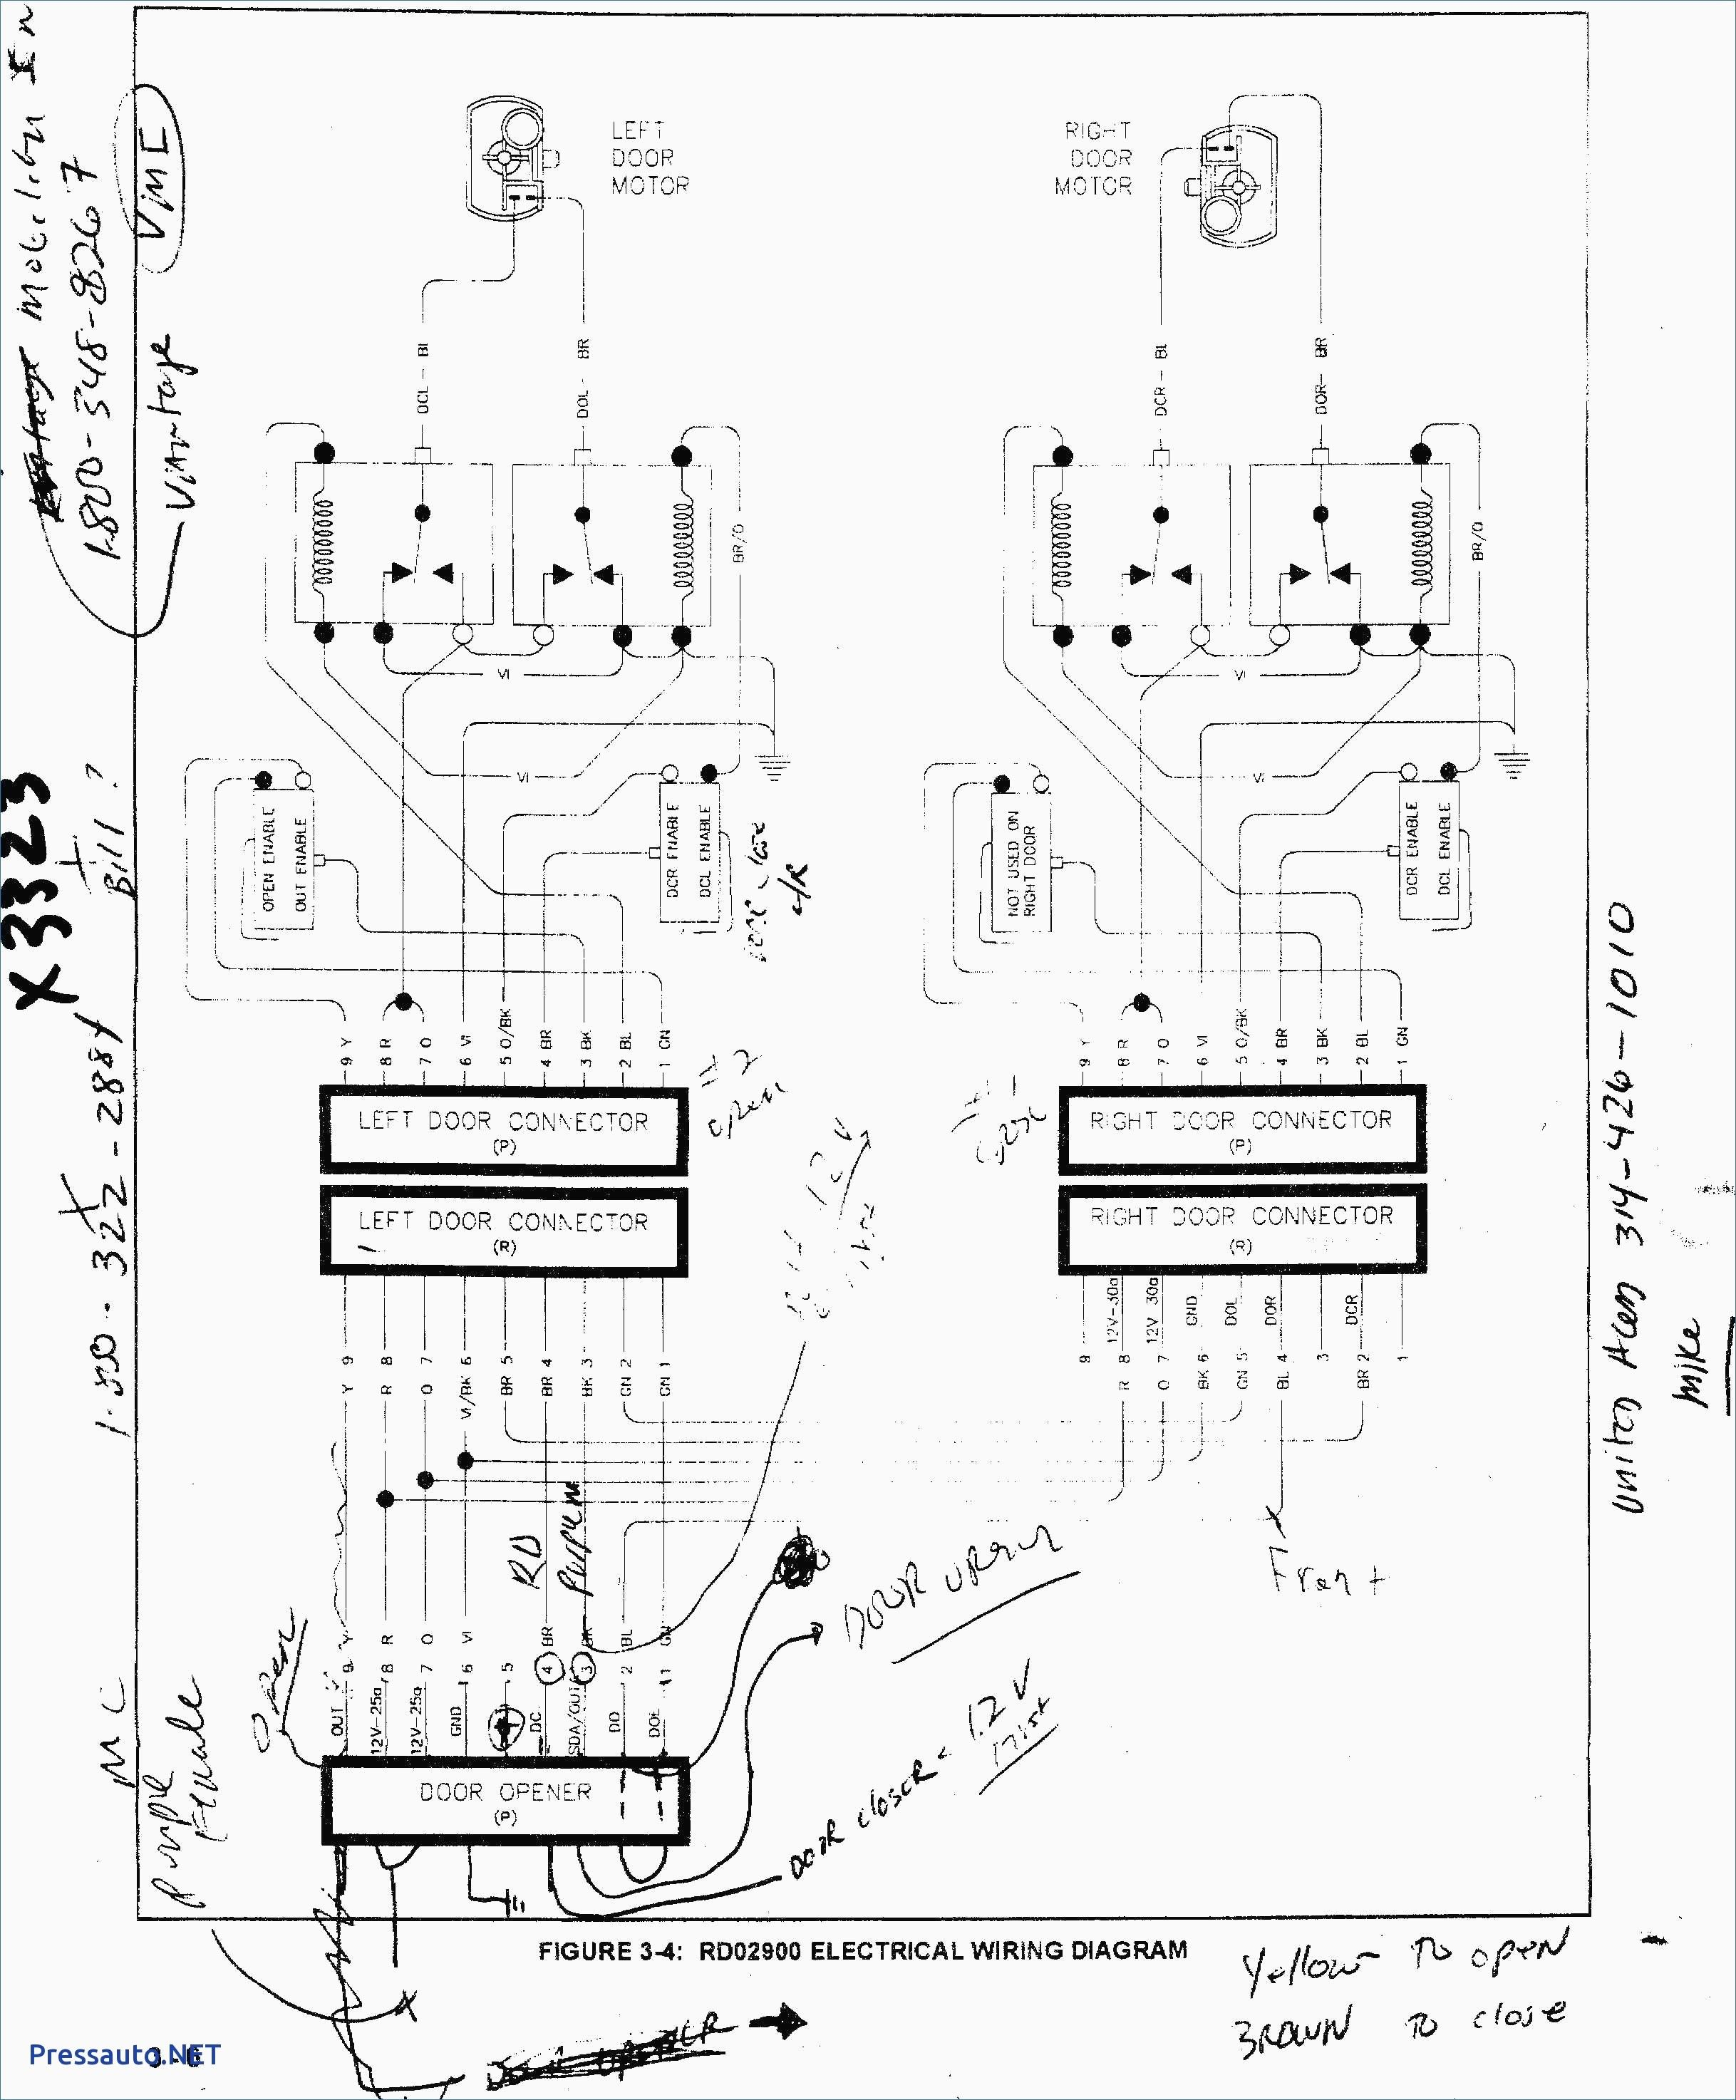 New Wiring Diagram For 2006 Club Car Precedent 48 Volt Diagram Diagramtemplate Diagramsample